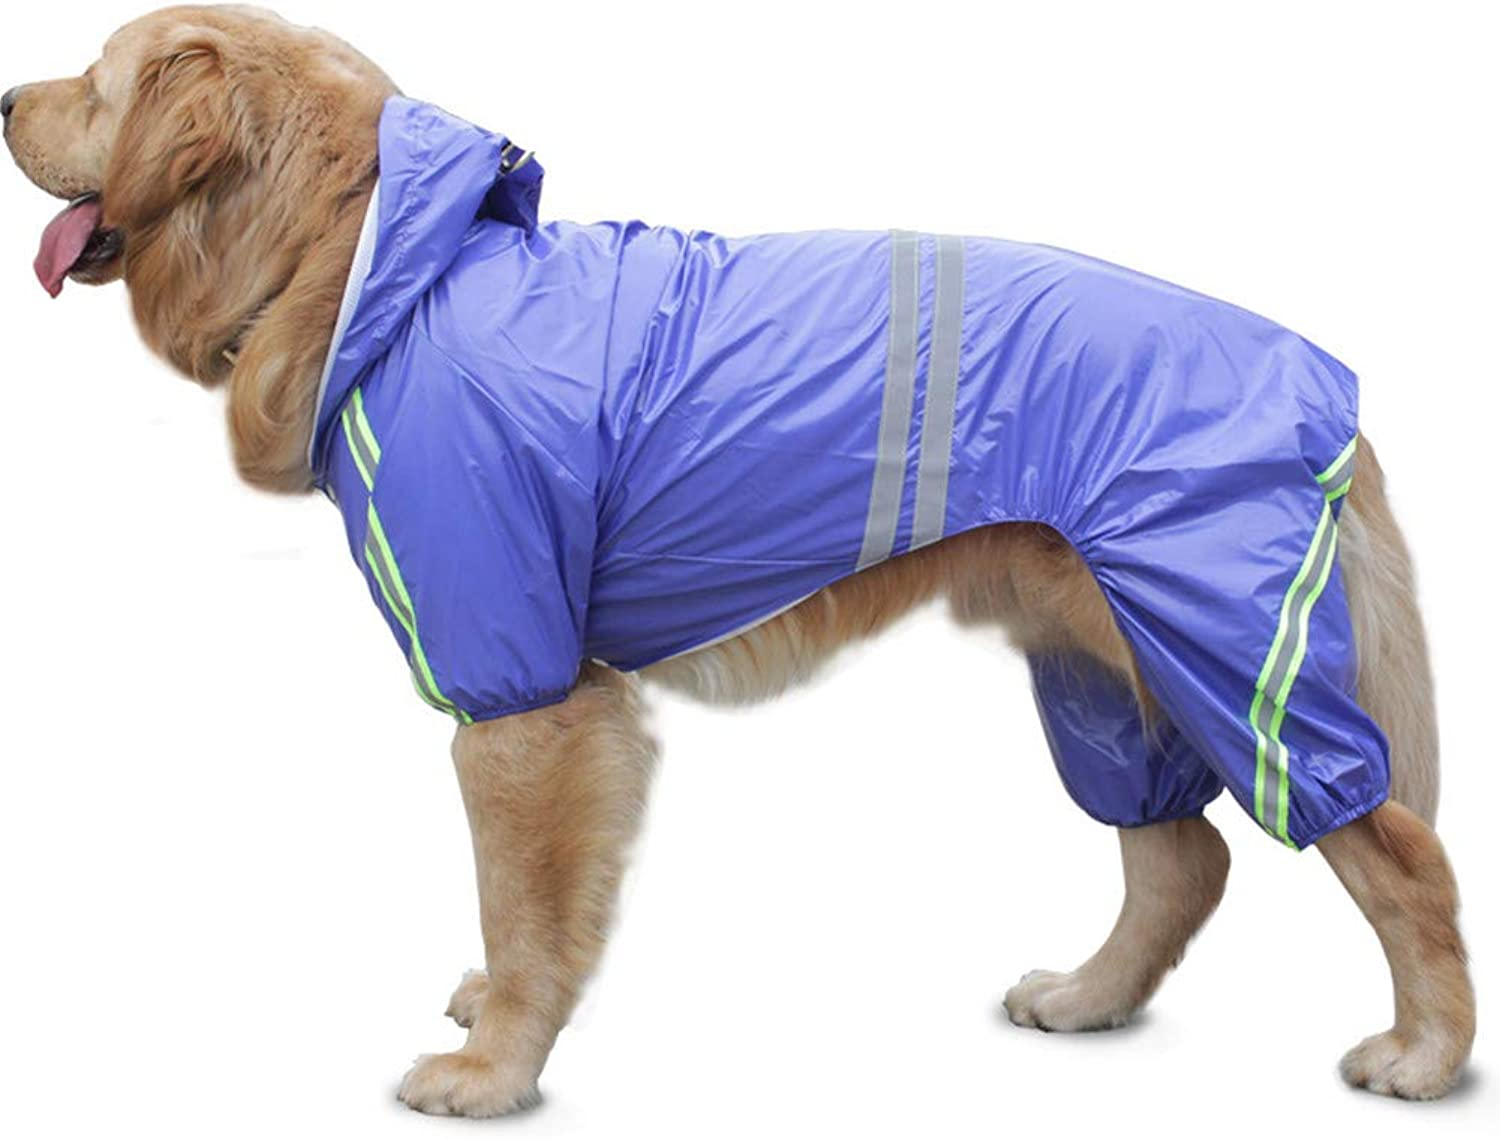 Pet Dog Raincoat Rain Jacket with Hood and Harness Hole for Small and Medium Large Dogs (Bust3492cm)